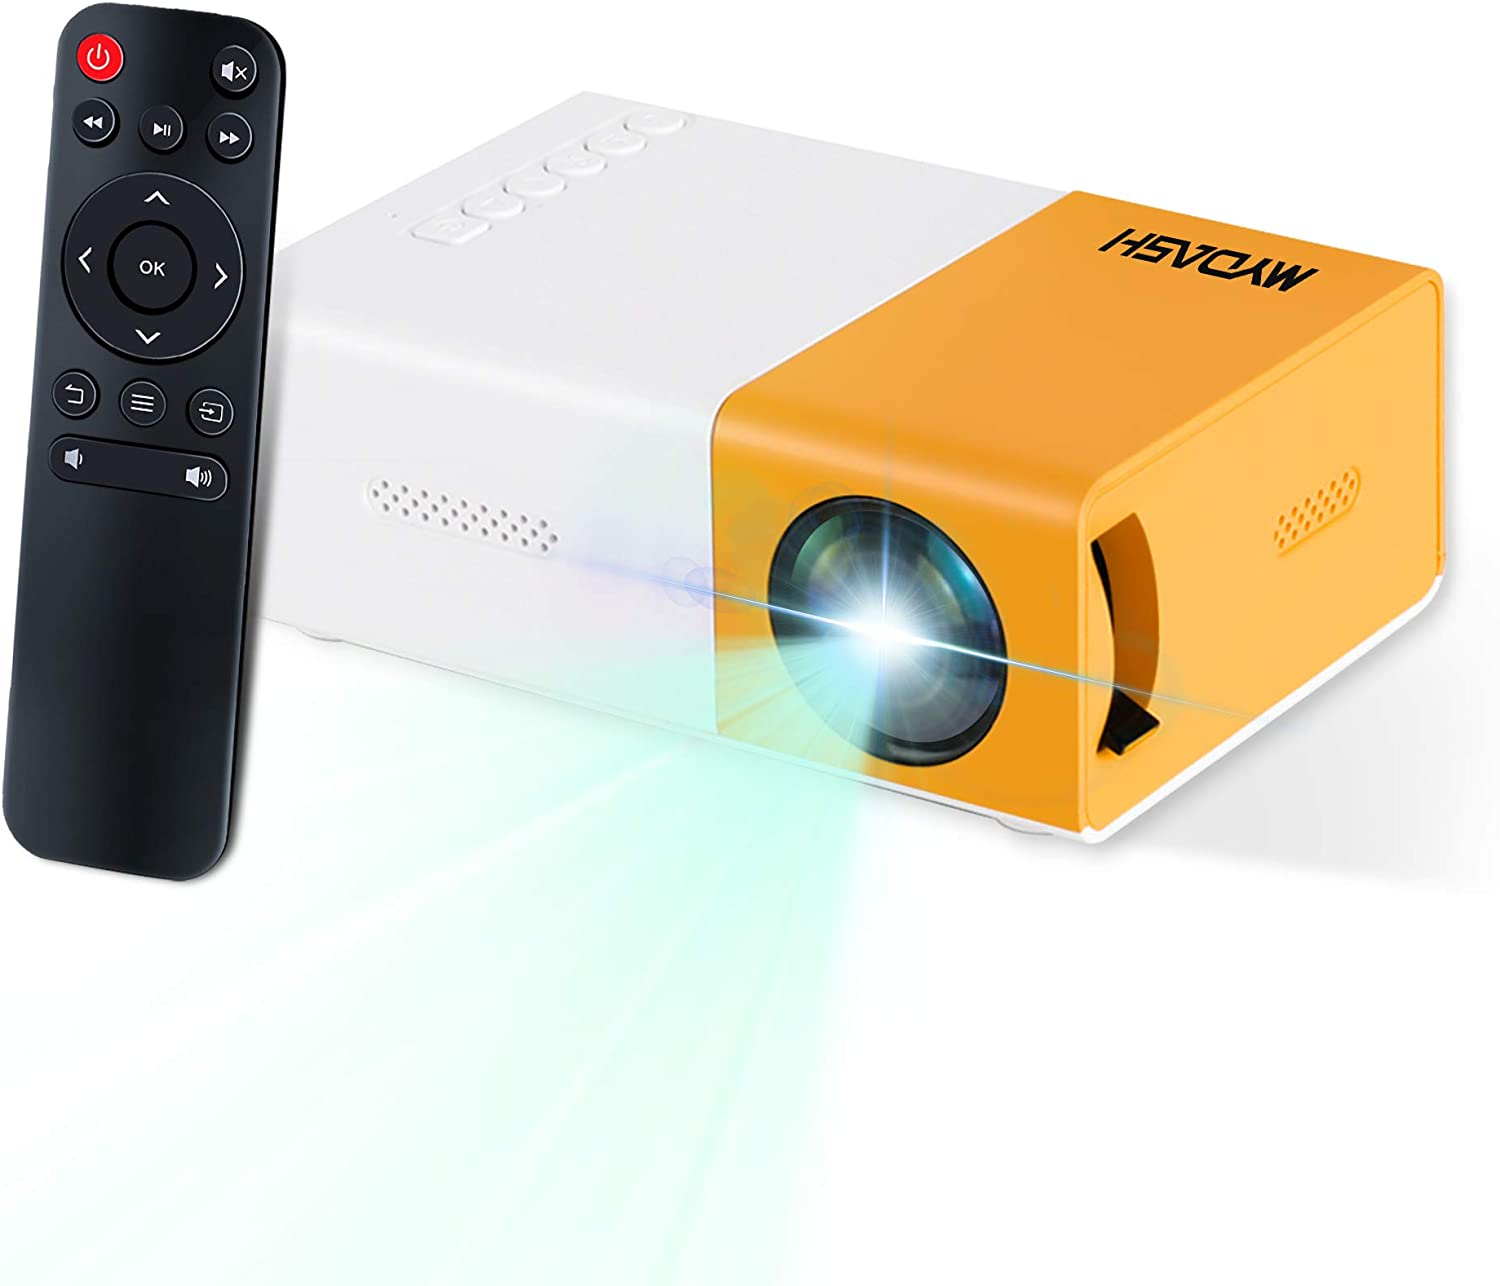 Portable Mini Projector LED Projector with HDMI USB AV for Party, Game, Child Present